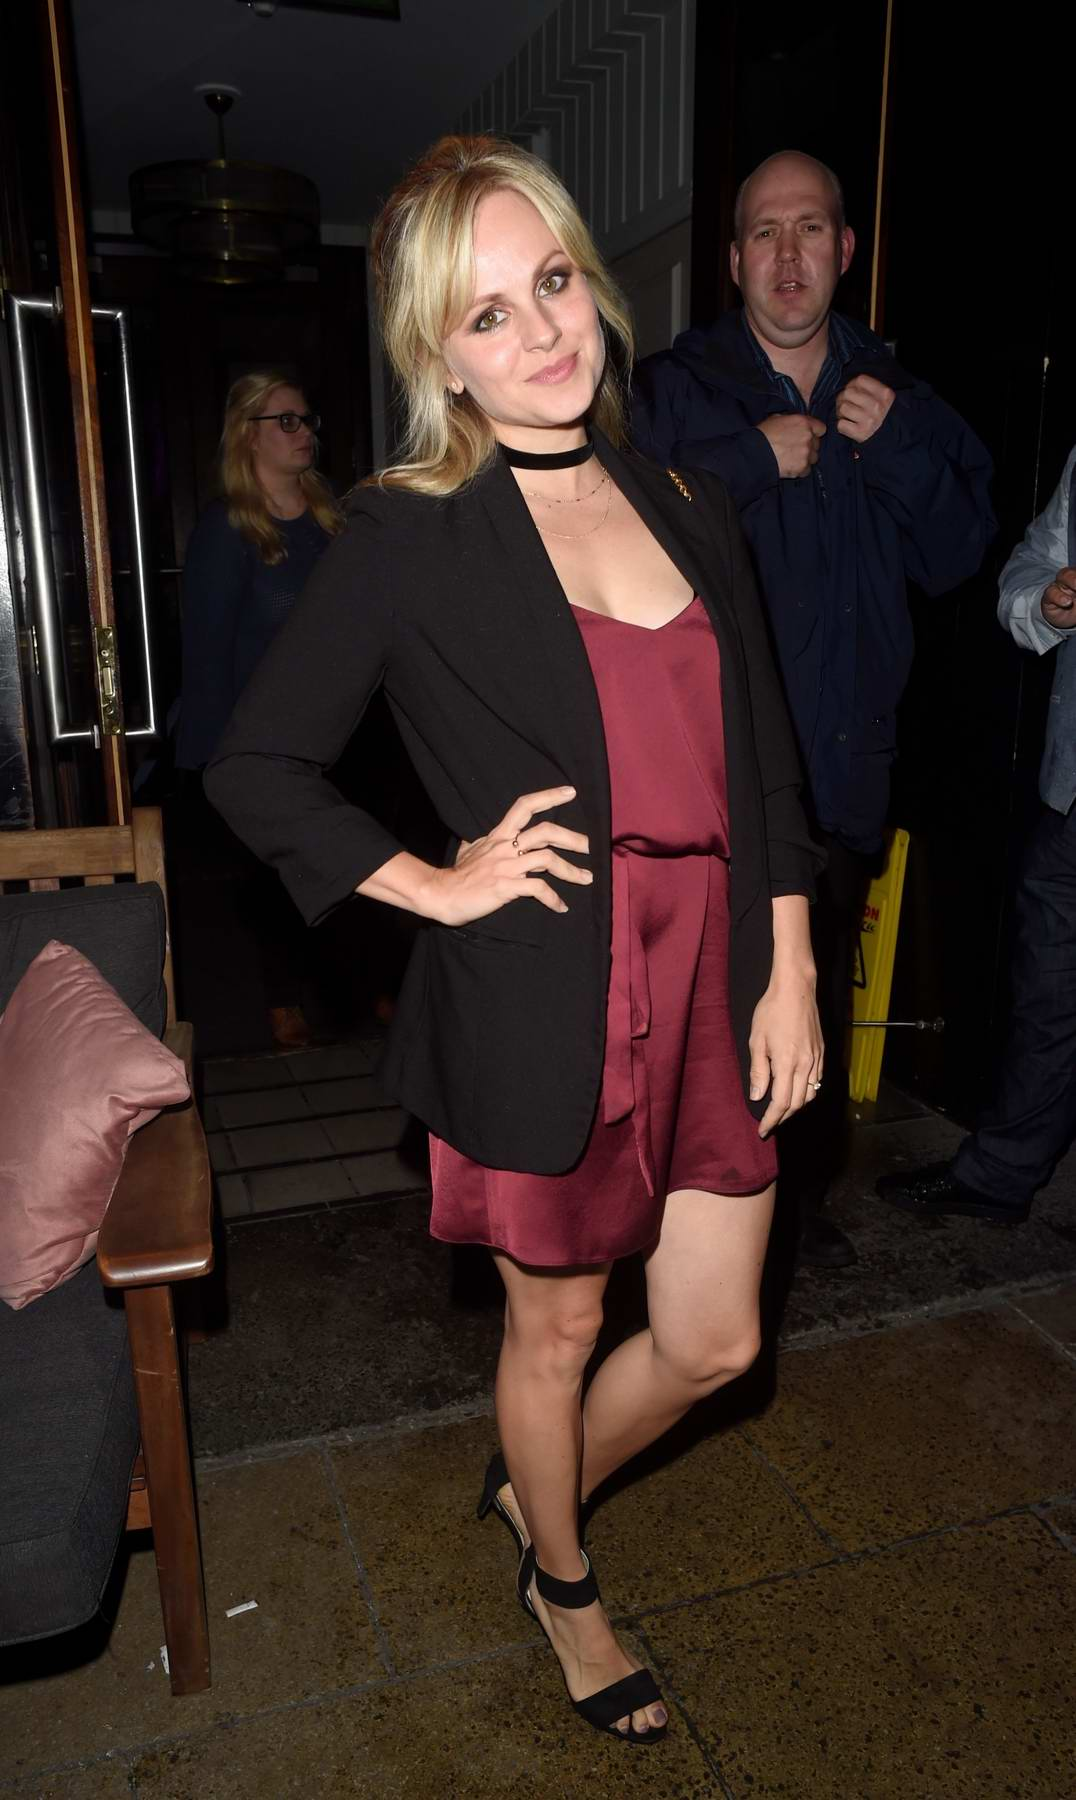 Tina O'Brien enjoying a girls night out The Living Room in Manchester, UK